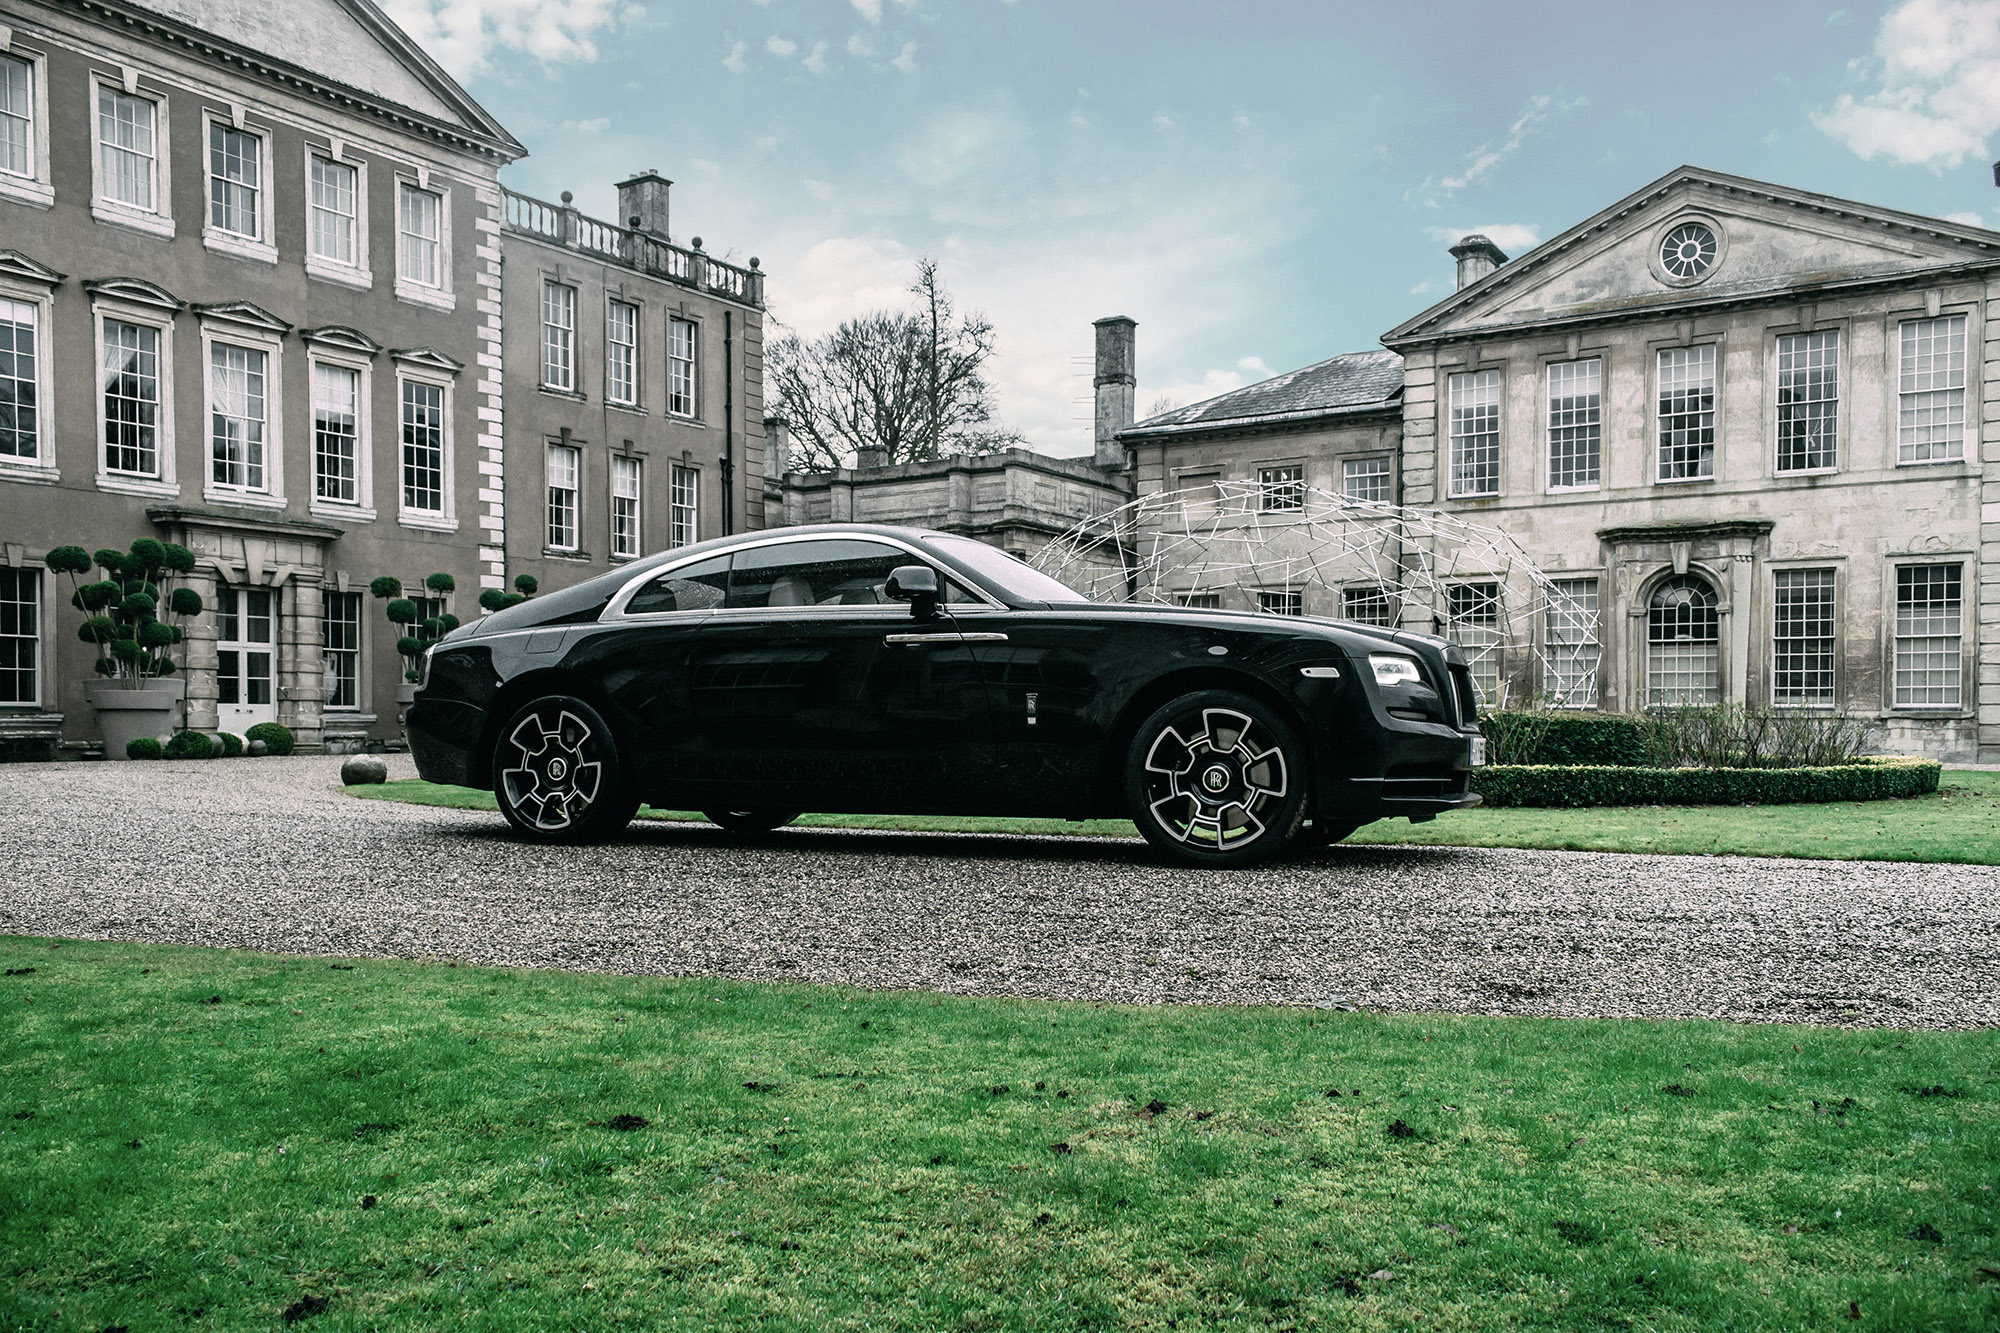 Driving The Black Badge Rolls Royce Wraith 6